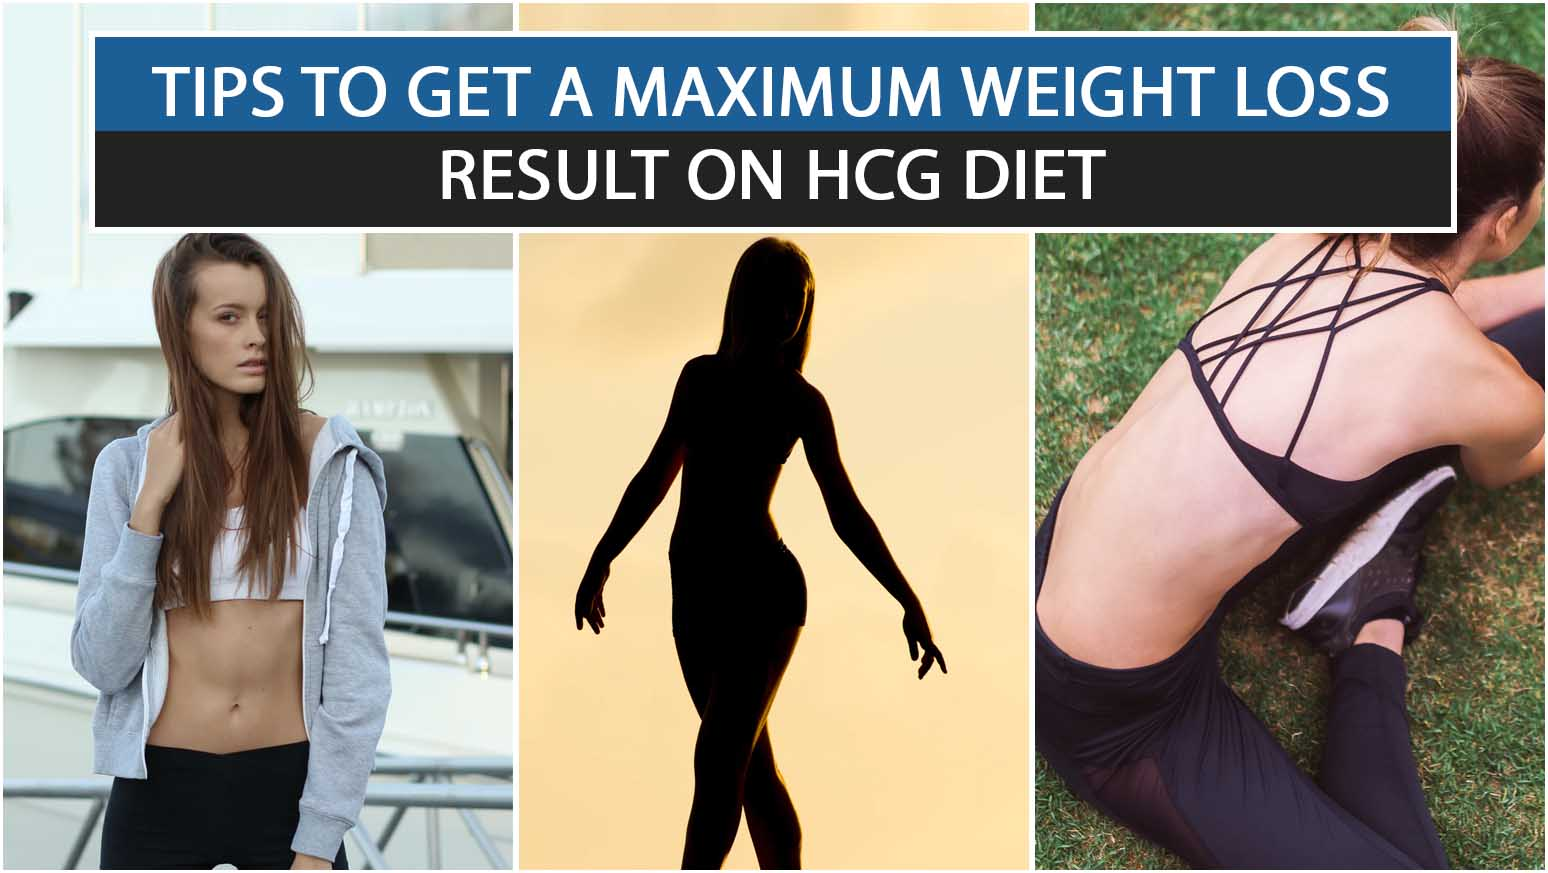 TIPS TO GET A MAXIMUM WEIGHT LOSS RESULT ON HCG DIET